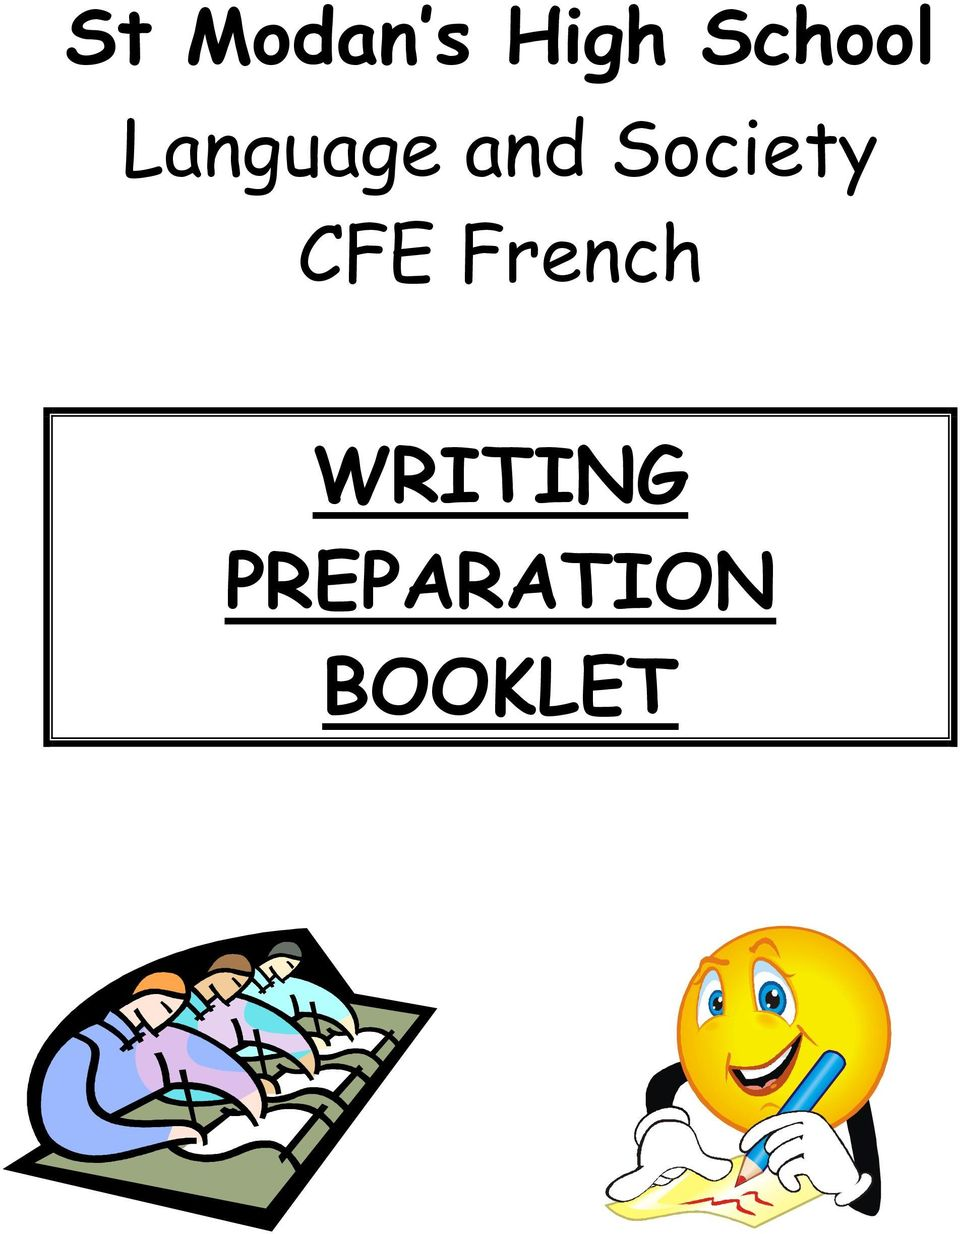 Society CFE French